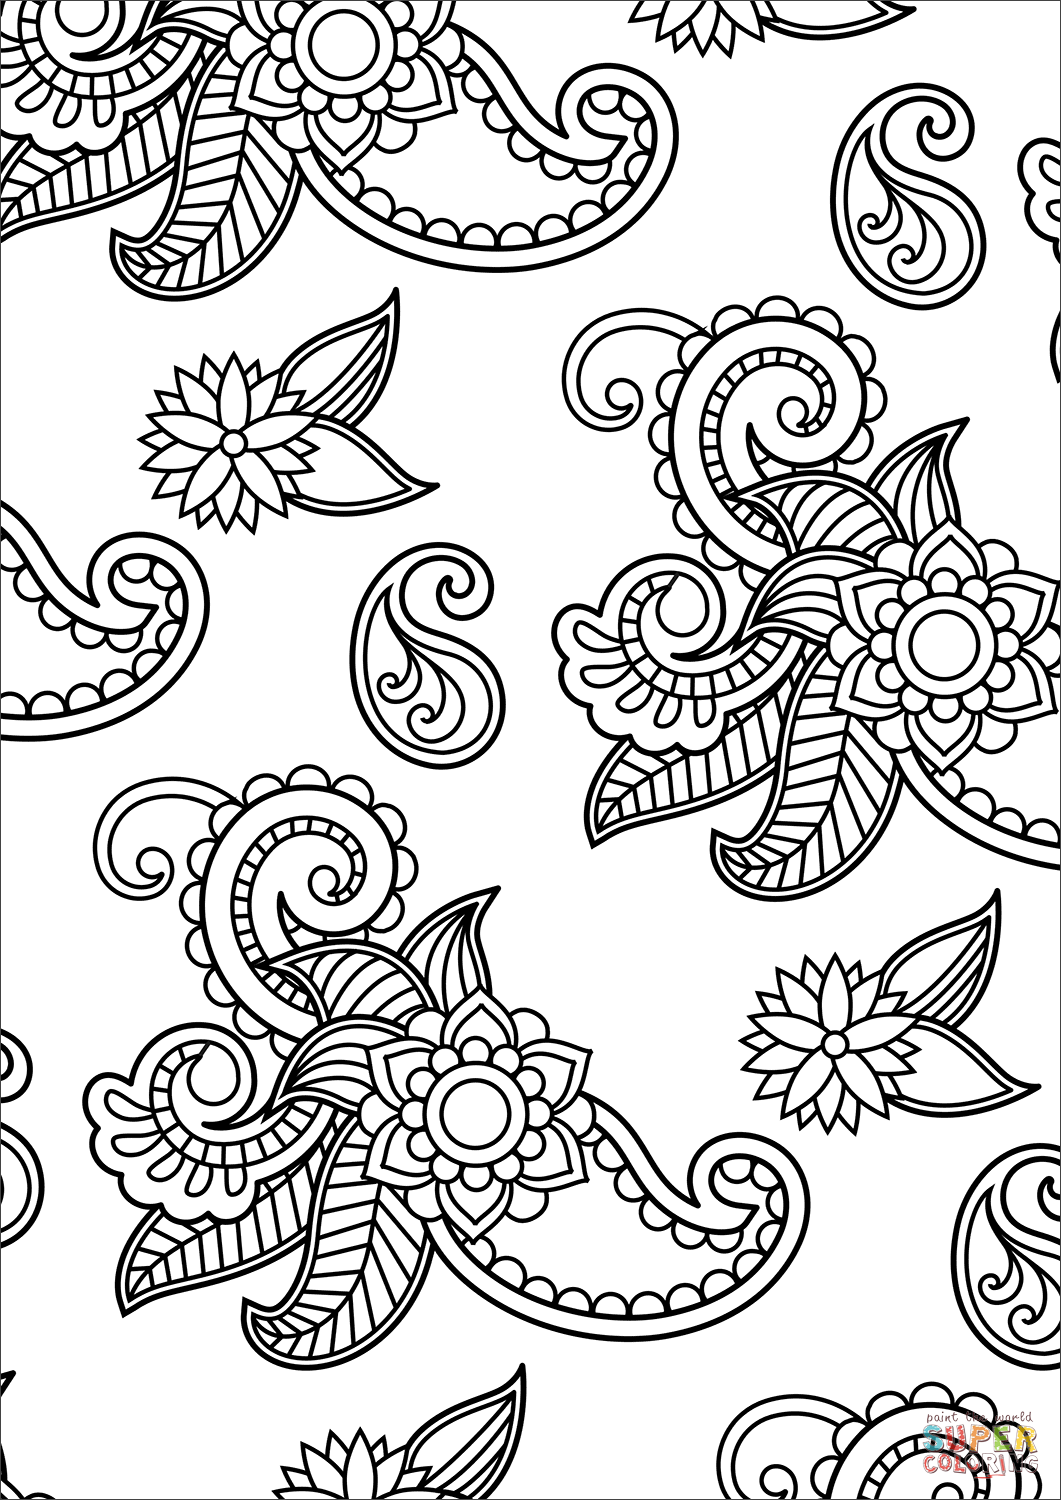 free printable paisley coloring pages paisley pattern coloring page free printable coloring pages printable paisley pages coloring free